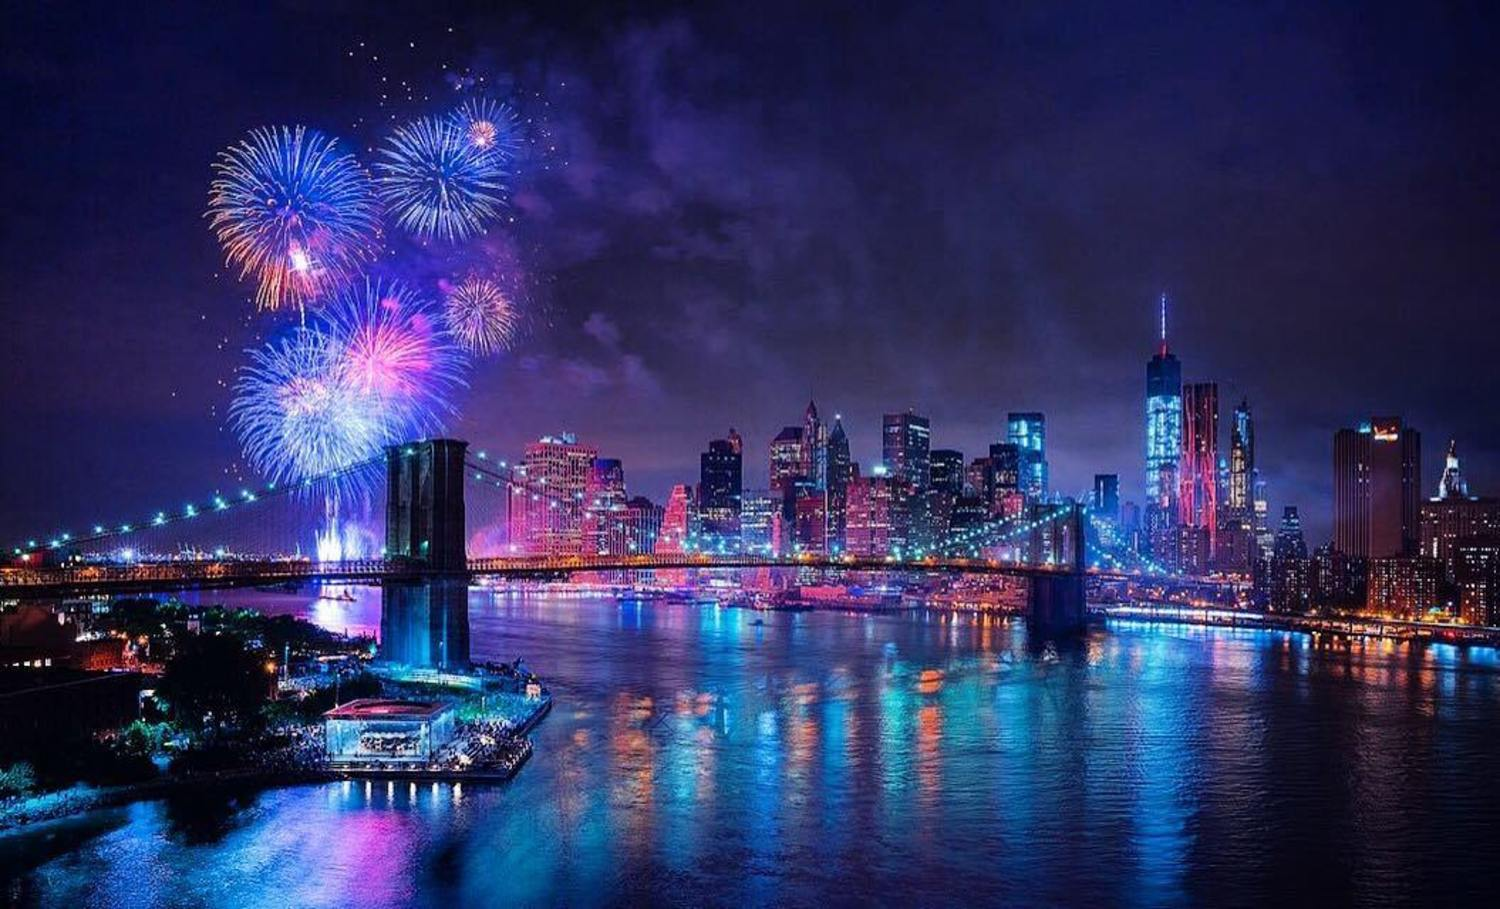 Happy Independence Day from New York 🇺🇸